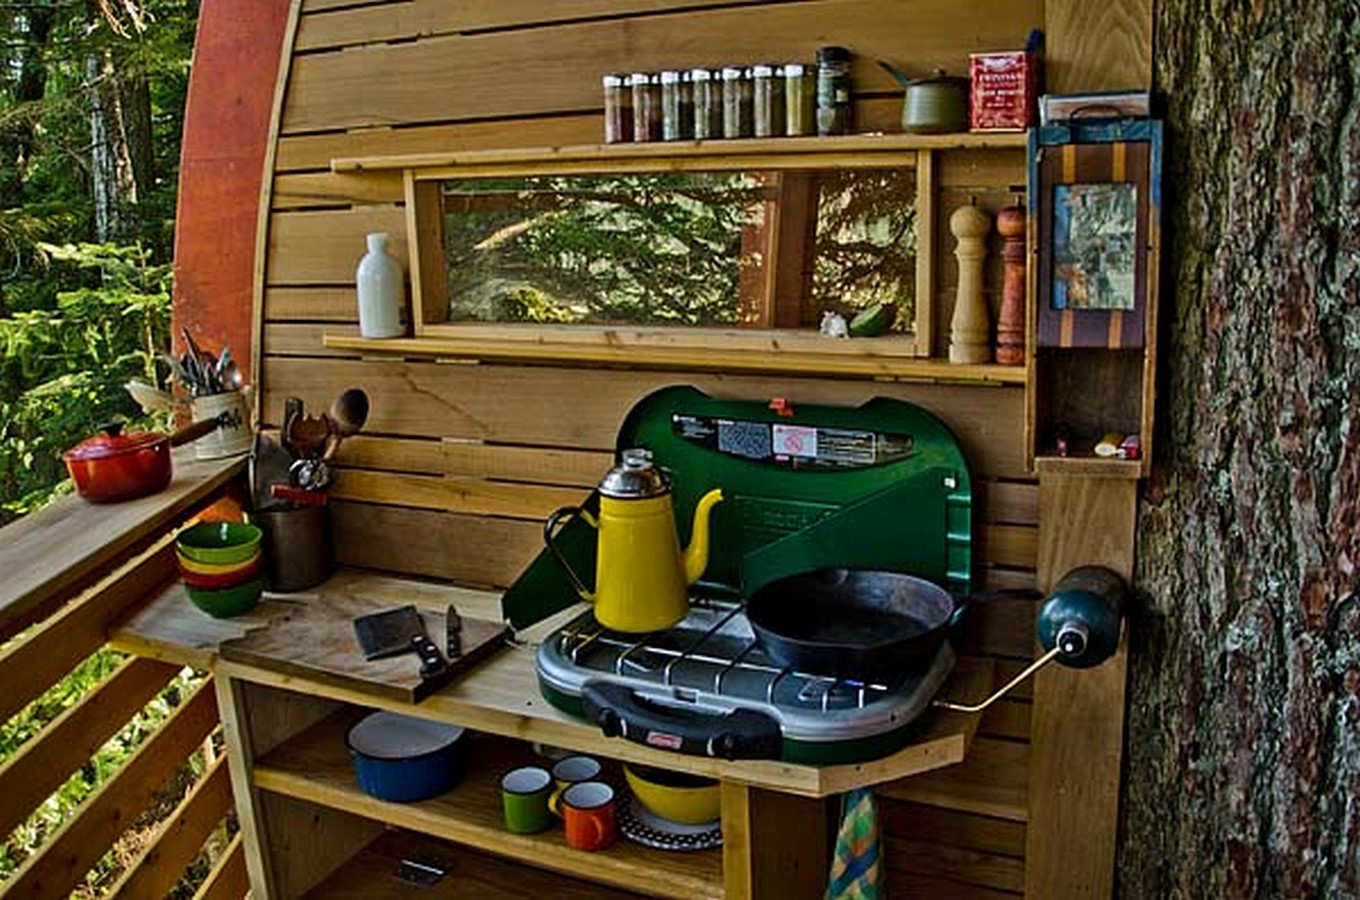 15 Examples of Tiny-home designs - Sheet35